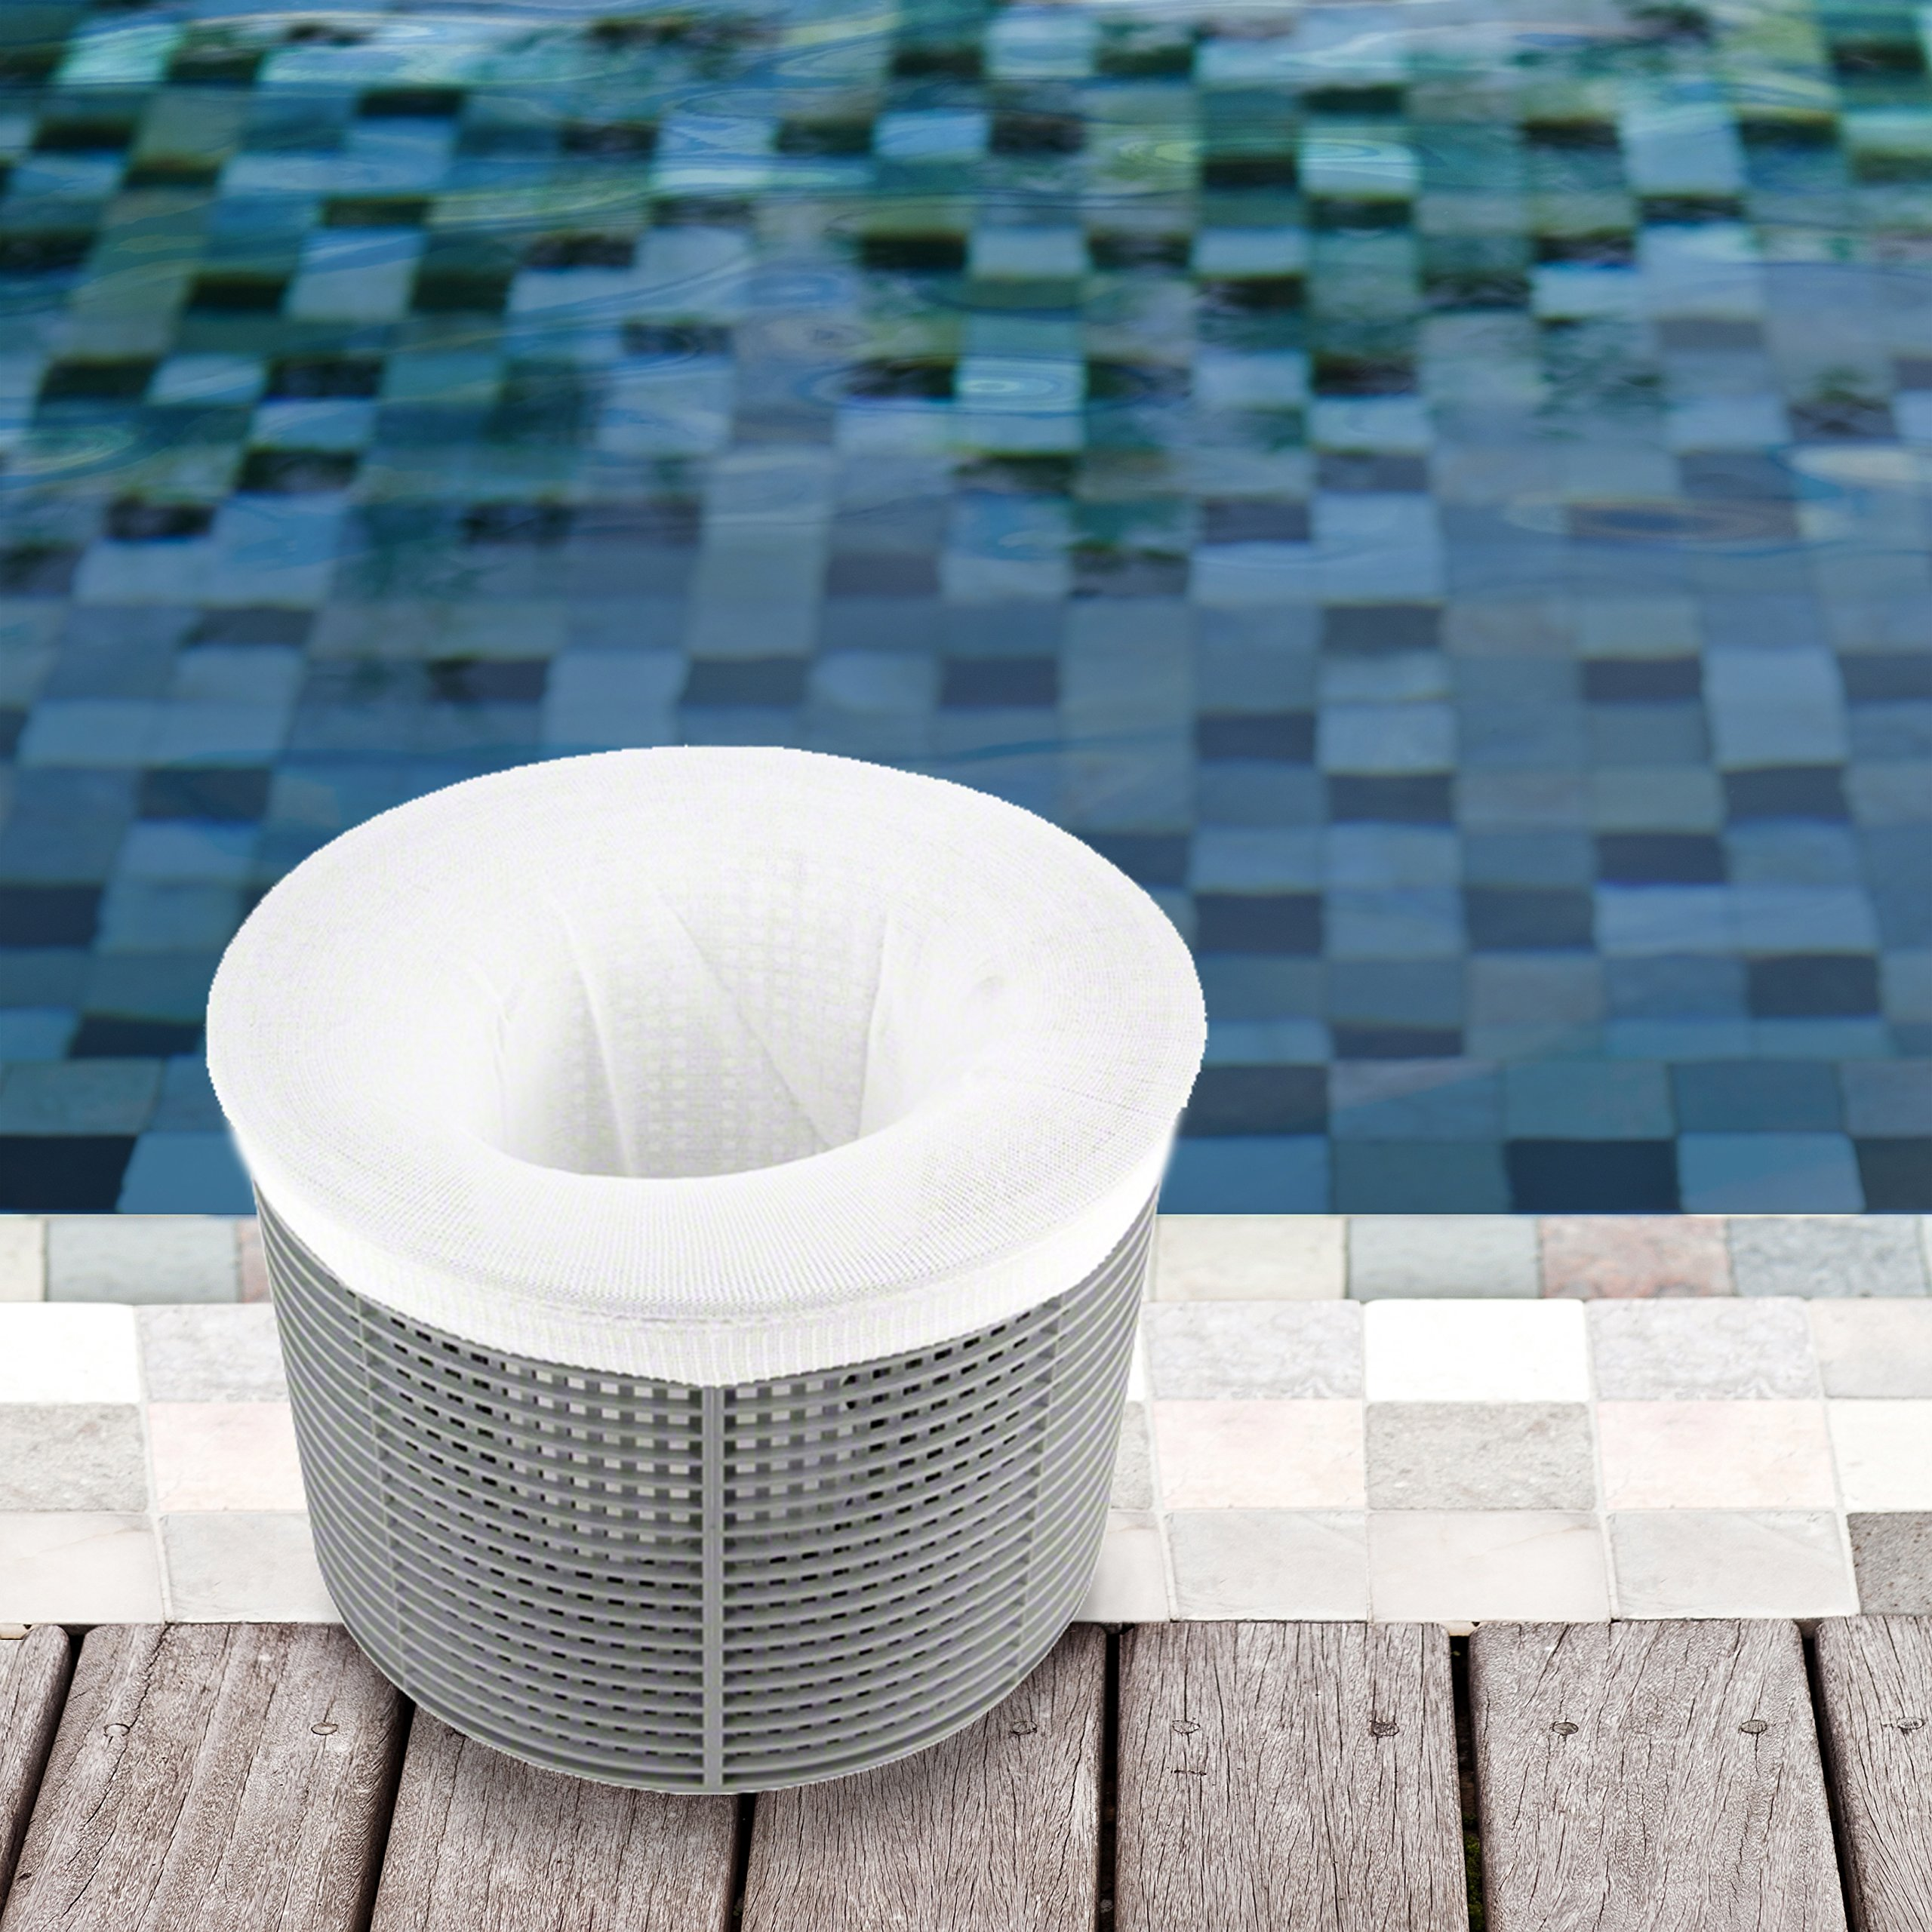 California Home Goods 20-Piece Swimming Pool Skimmer Socks Pack. Filter Savers for Baskets and Skimmers. Reusable Swimming Pool Filter Net. Fine Mesh Filter Screen Sock Liners.